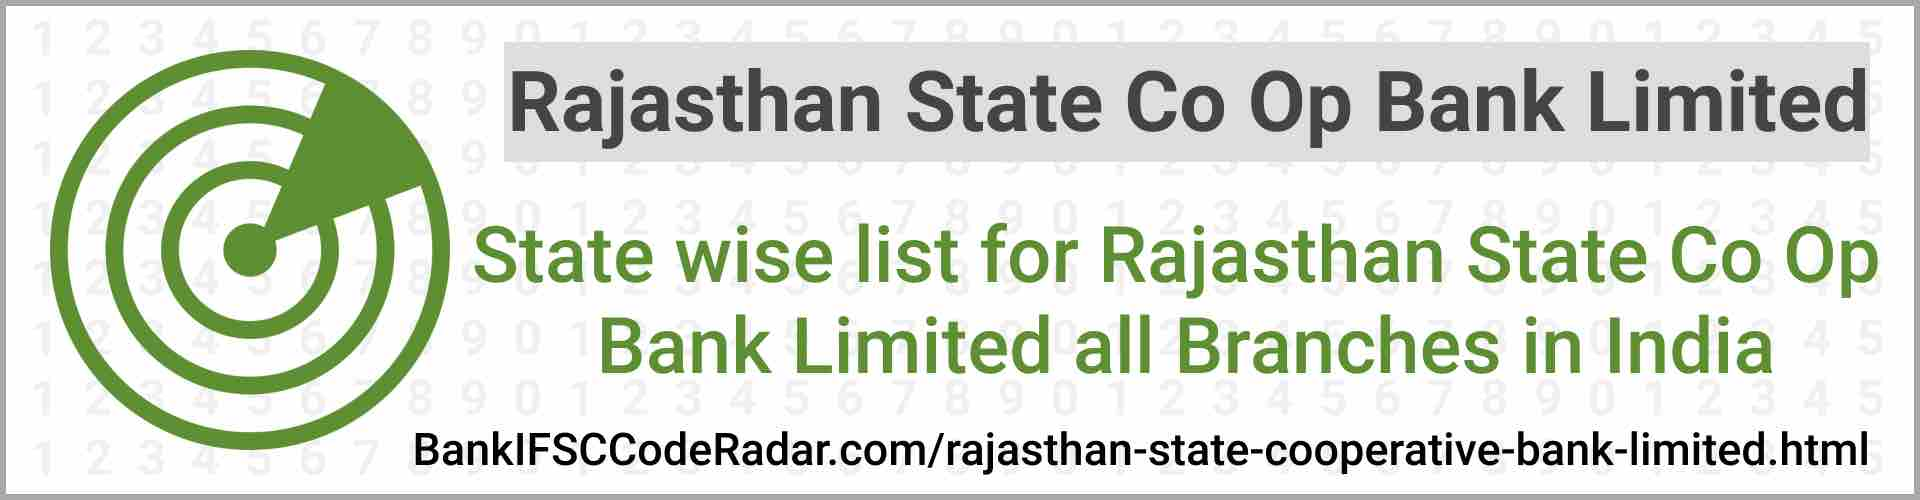 Rajasthan State Cooperative Bank Limited All Branches India